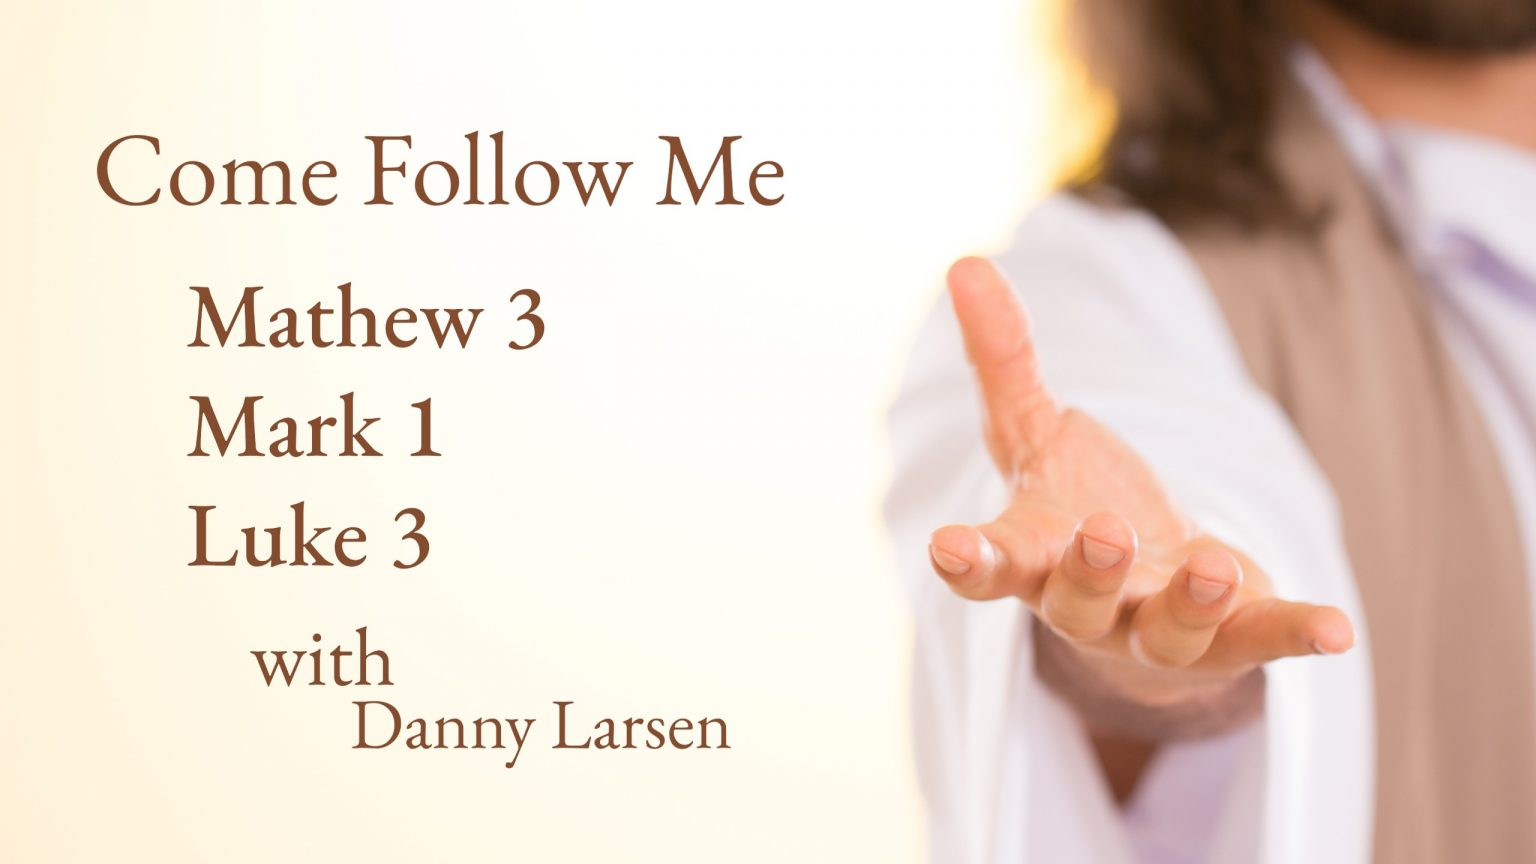 Matthew 3 Mark 1 Luke 3 – Come Follow Me